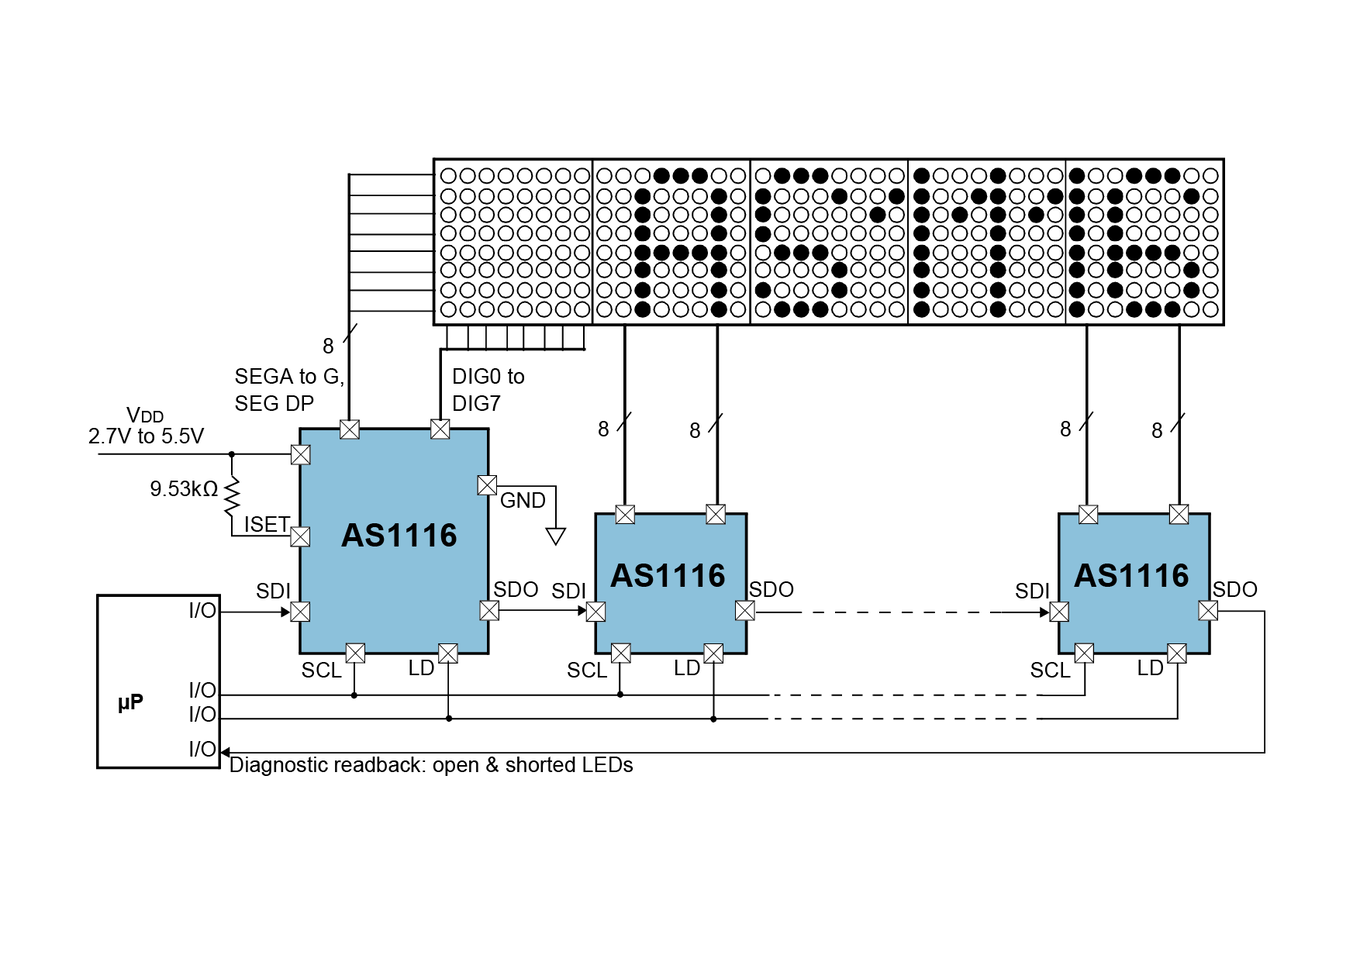 AS1116 Block Diagram